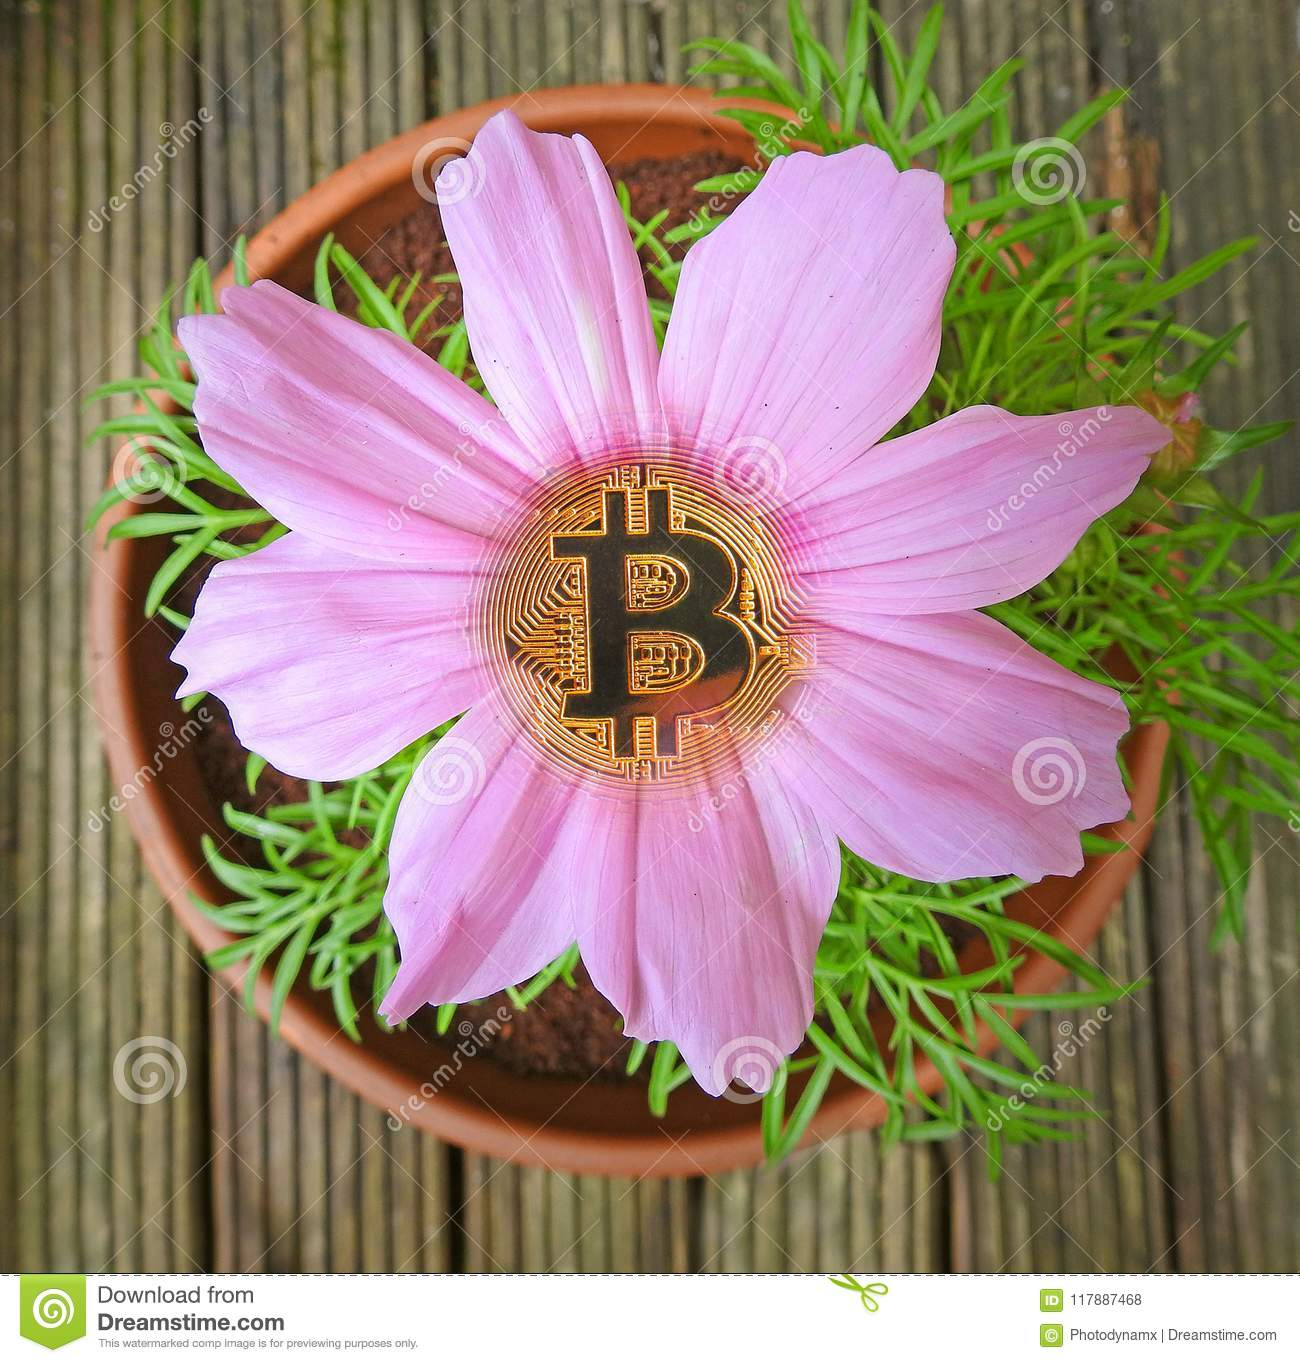 Bitcoins images of flowers schalke augsburg betting preview